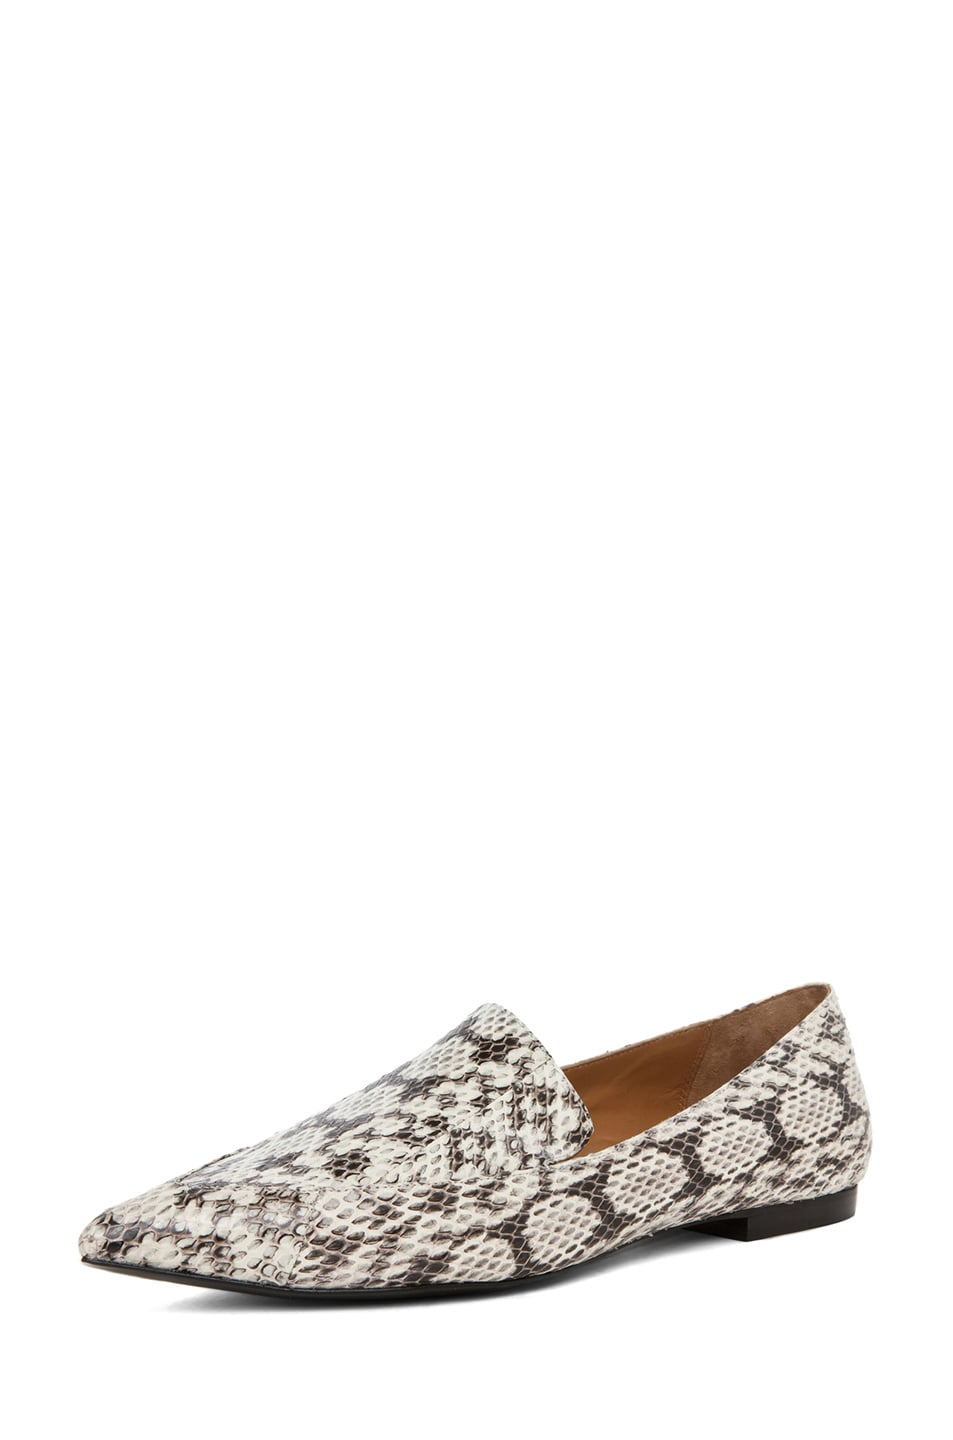 Image 2 of 3.1 phillip lim Spade Loafer Flat in Natural